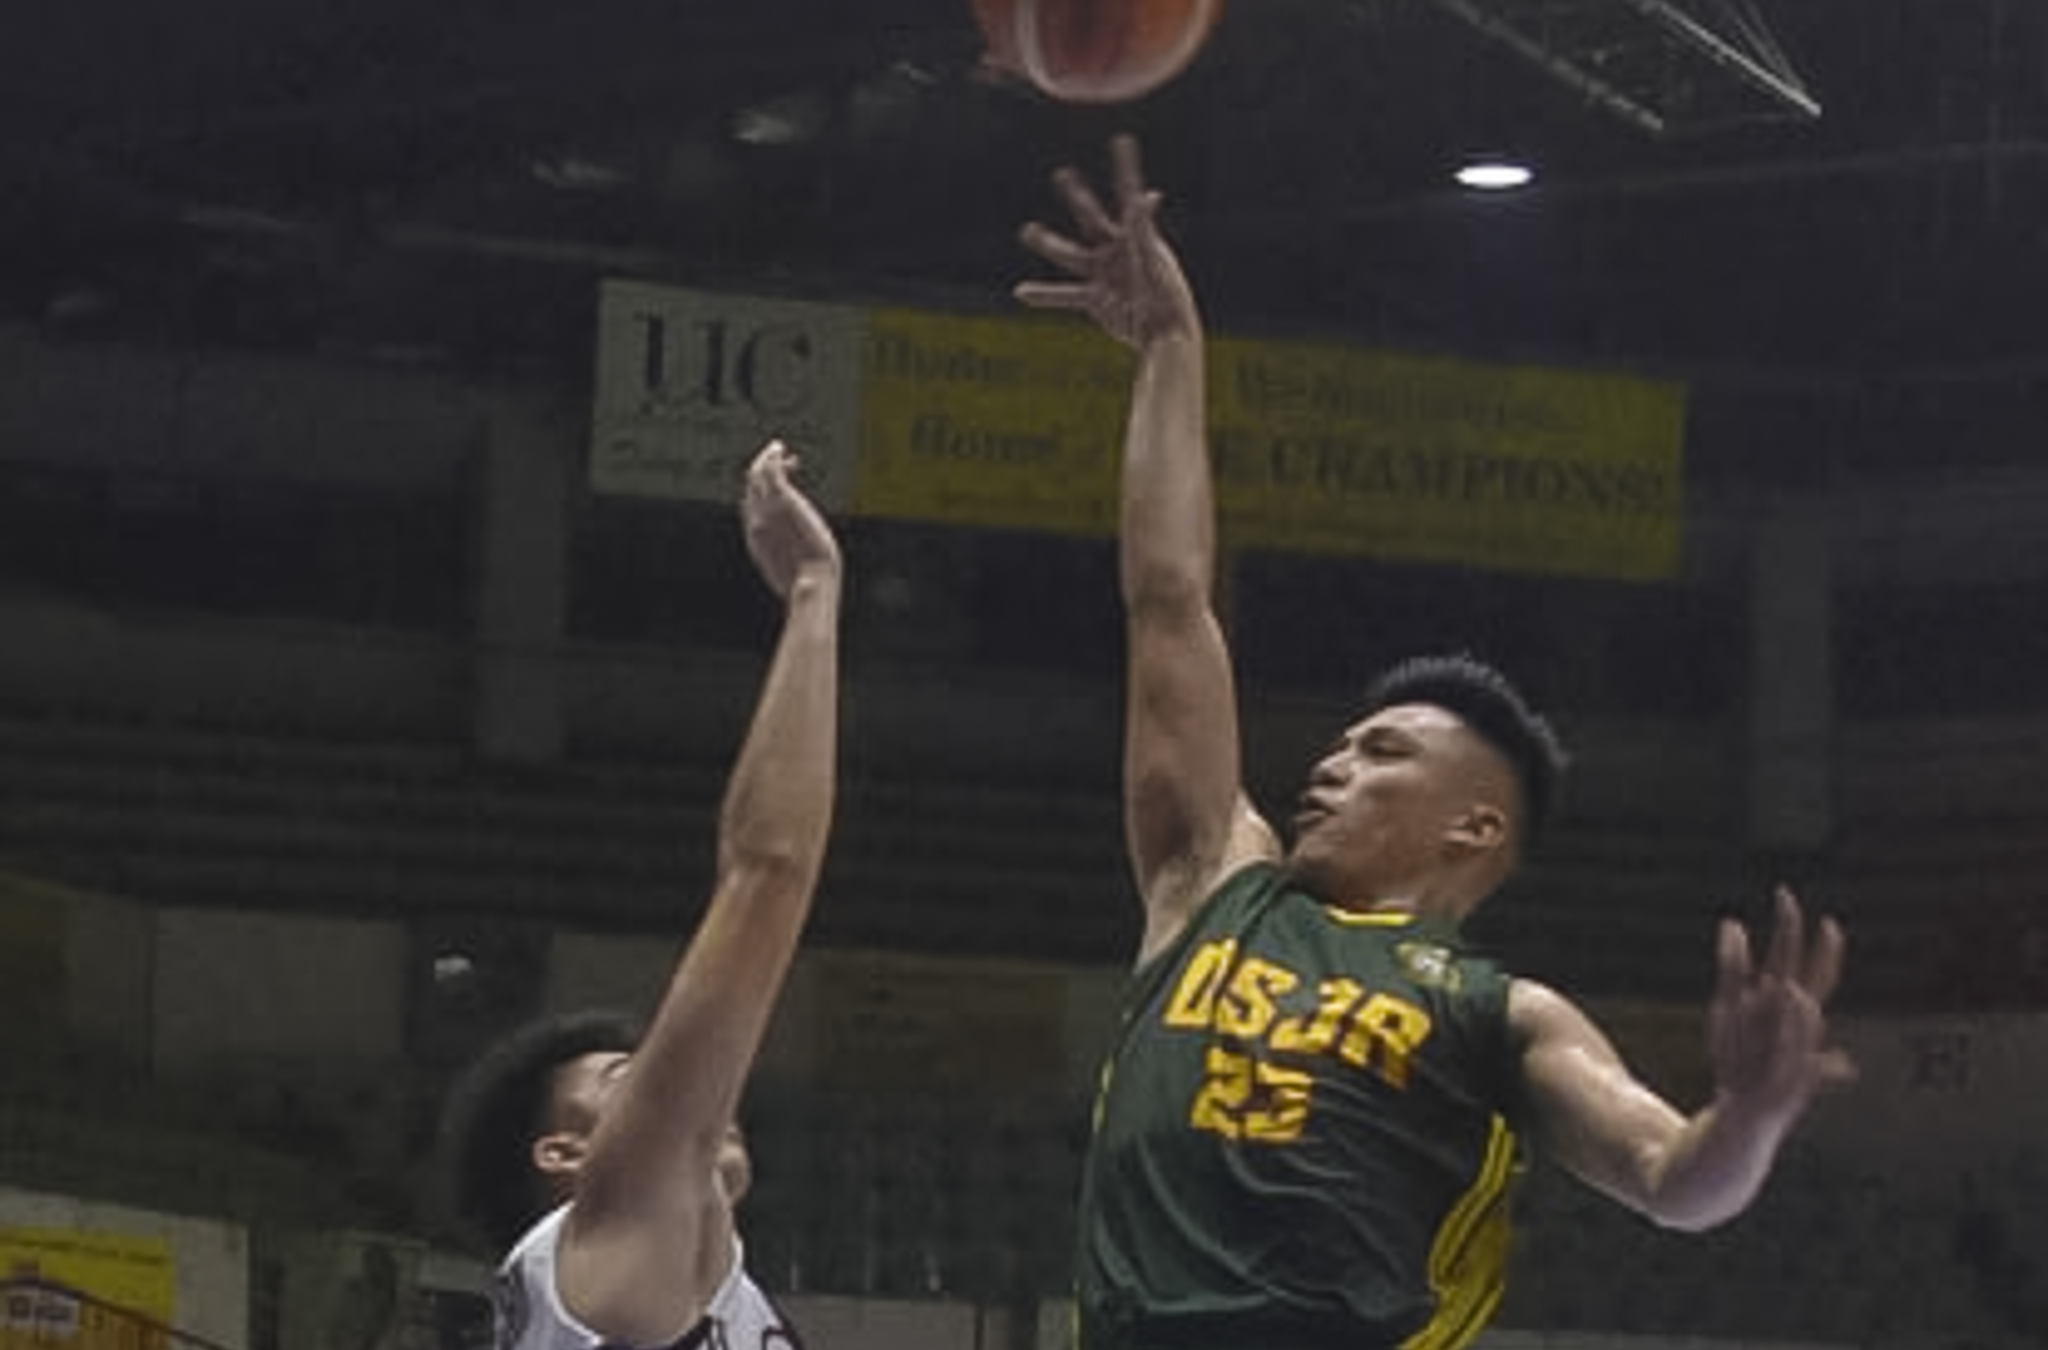 USJ-R teams beat foes to end slumps in Cesafi caging